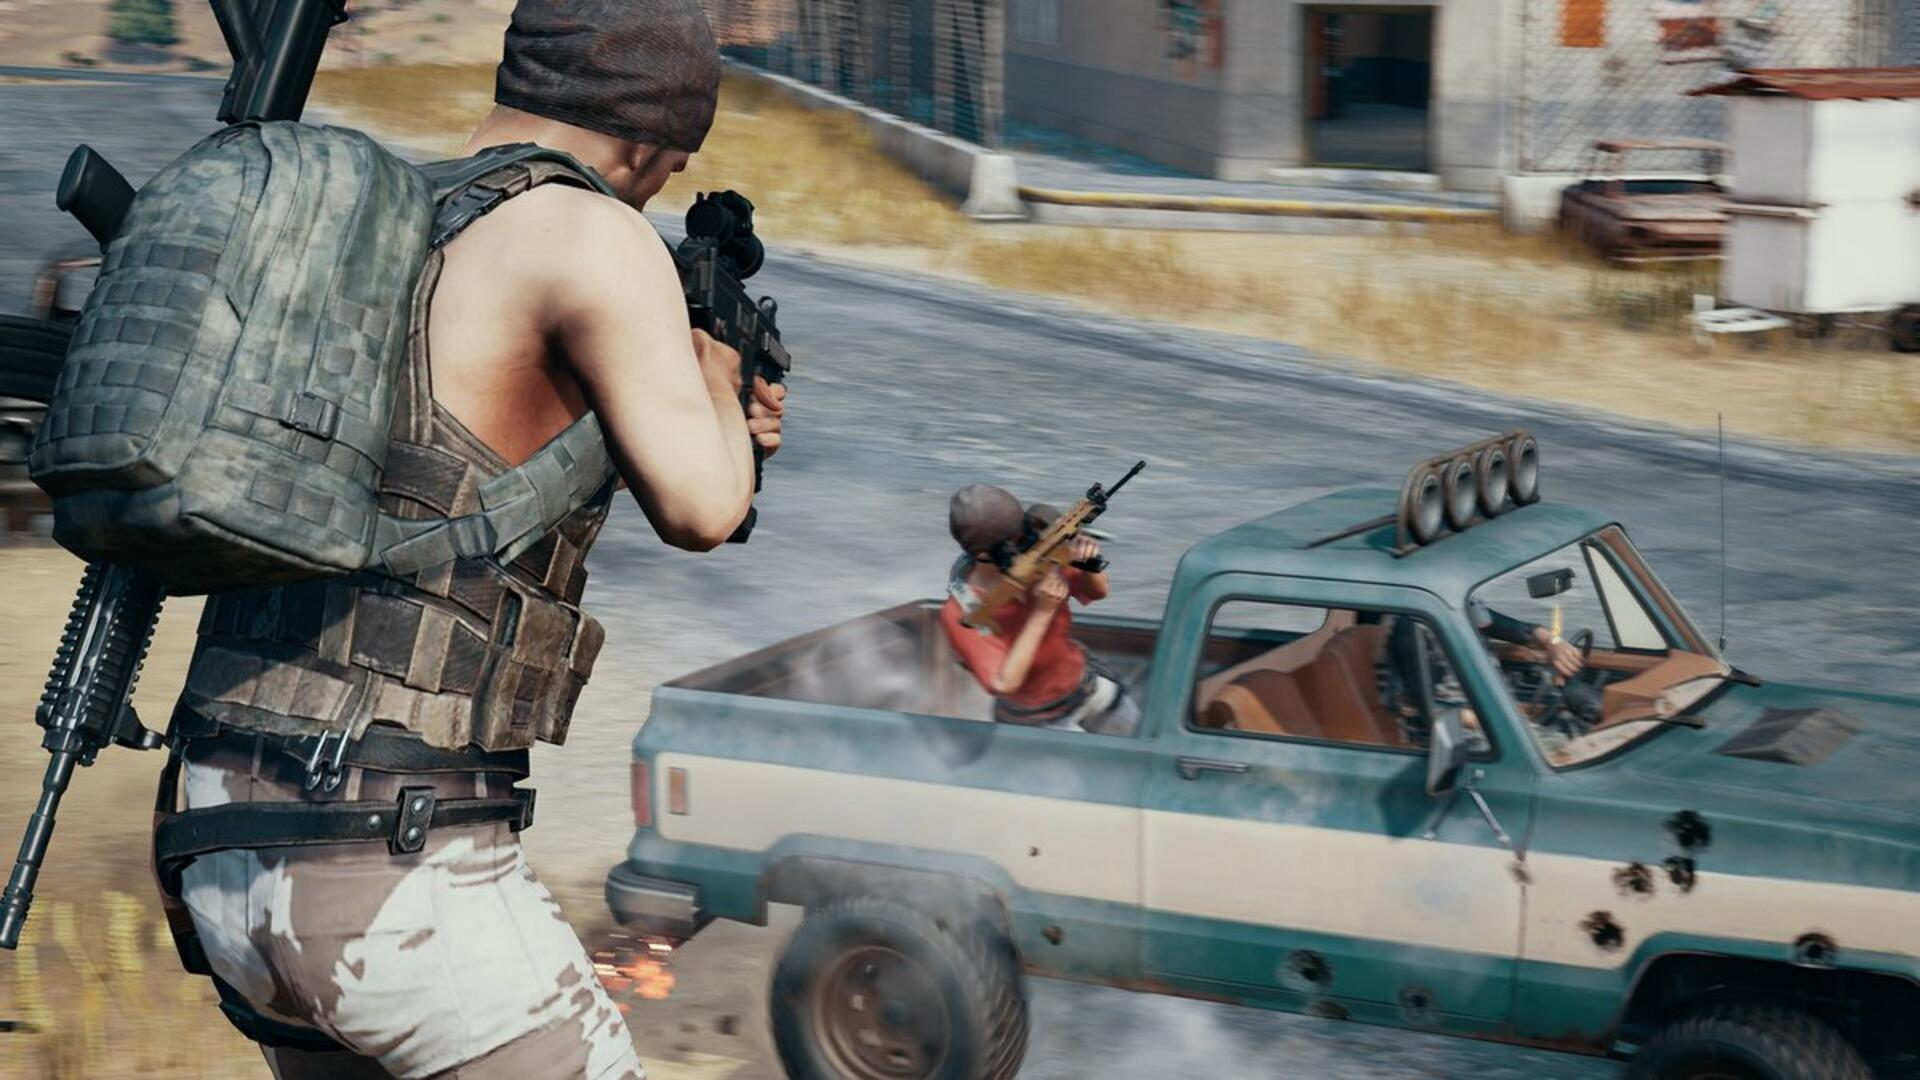 Pubg Is Getting Cross Play On Xbox One And Ps4 But Not Pc